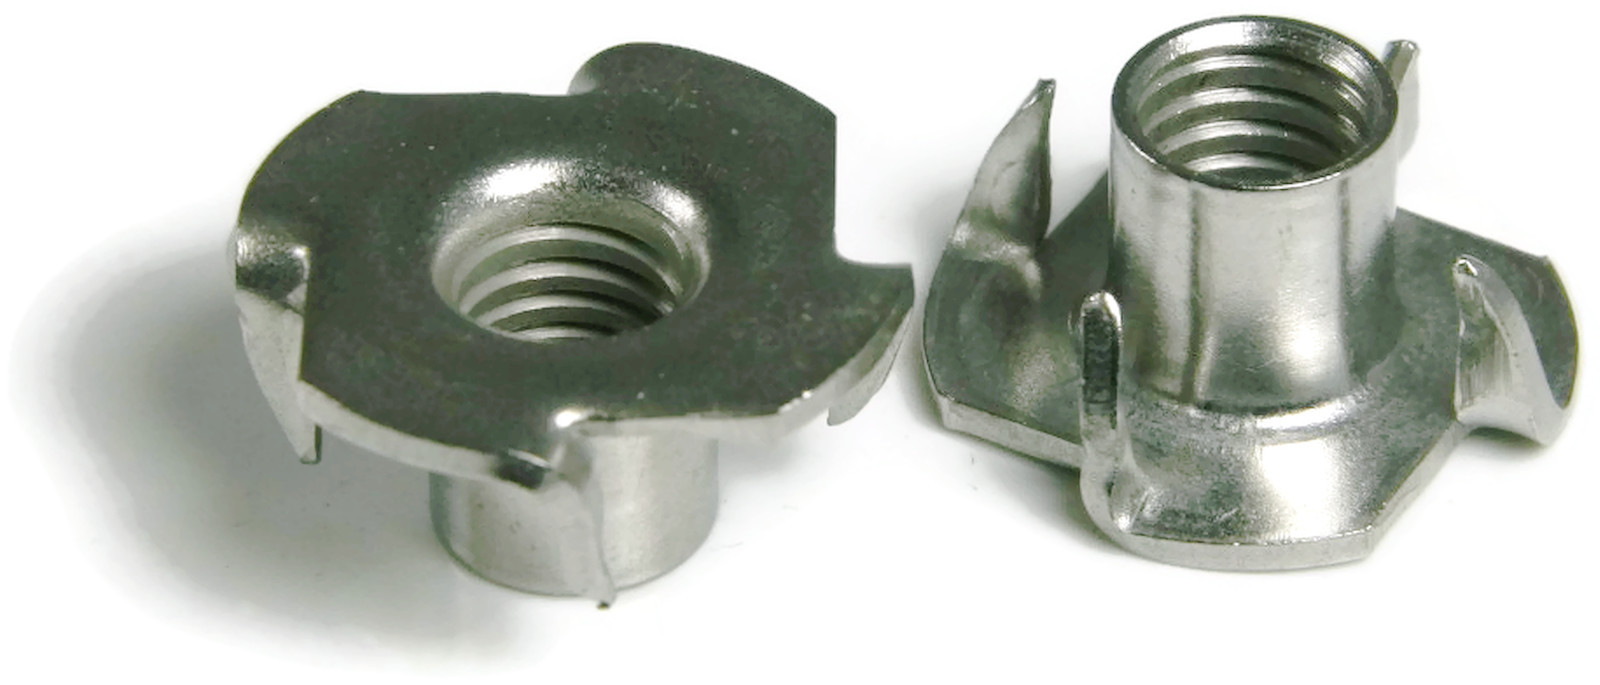 Stainless Steel T Nut Unc 4 Prong 1 4 20 X 5 16 Qty 25